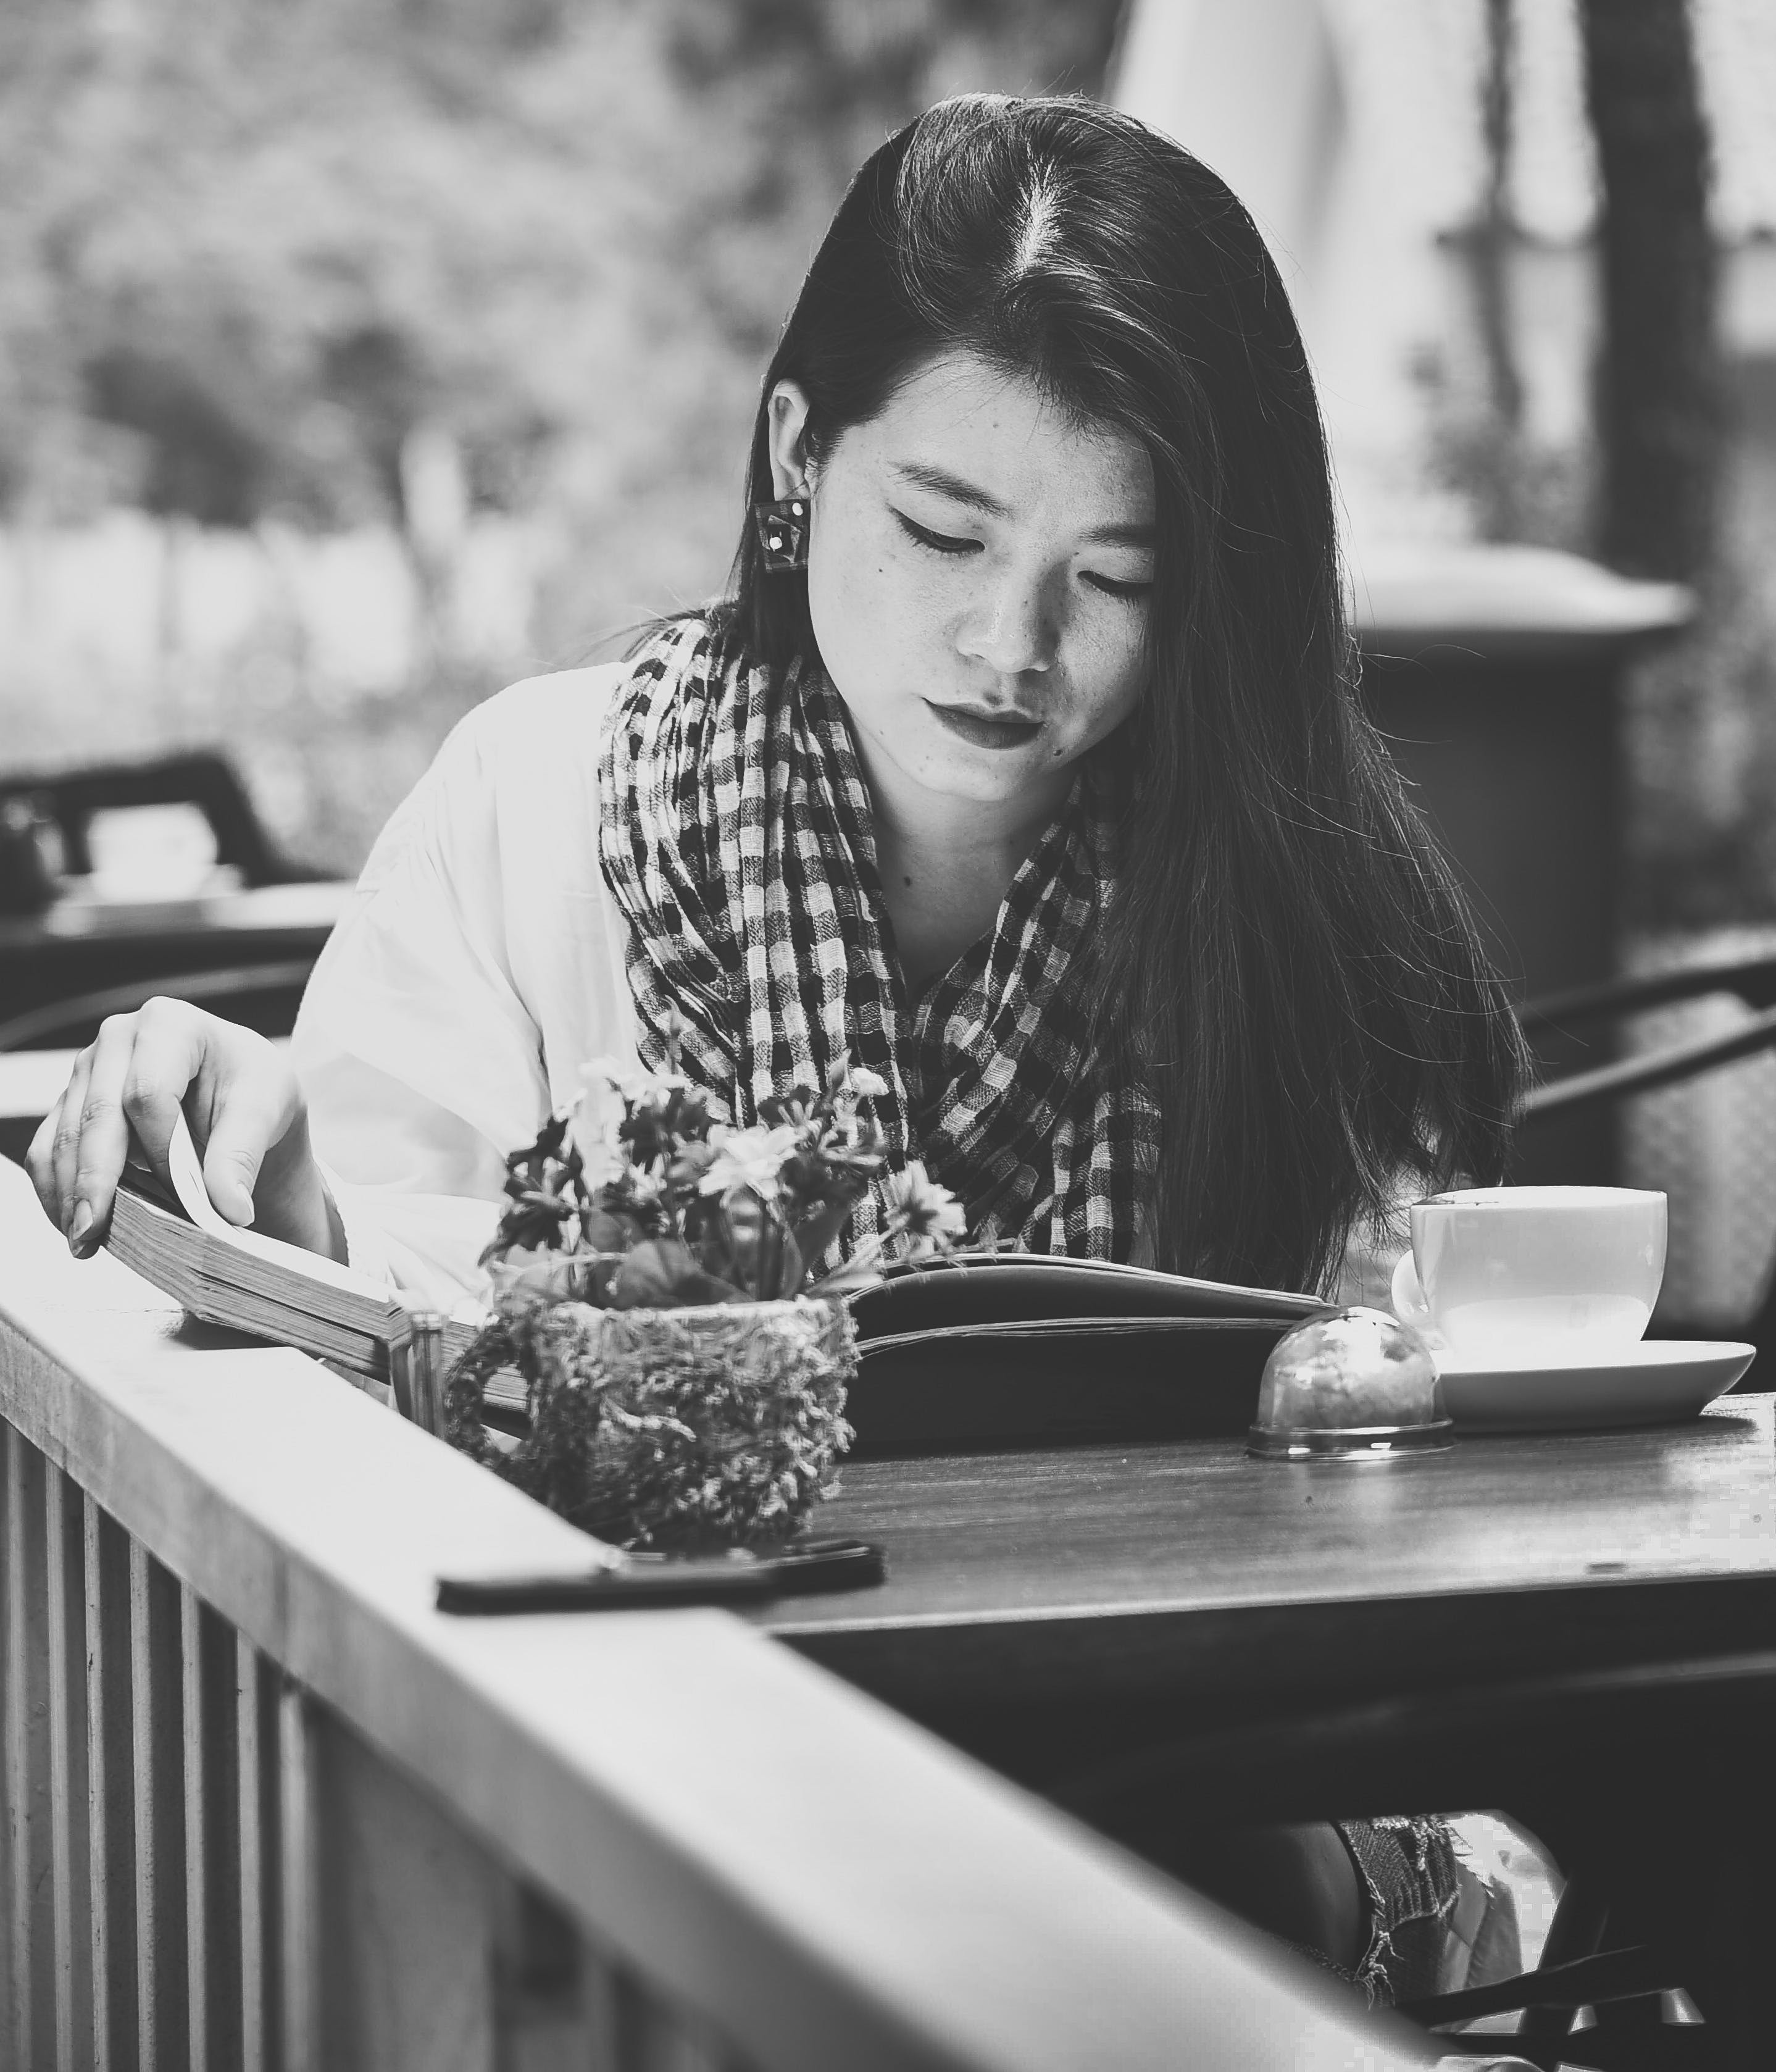 Grayscale Photography of Woman Reading